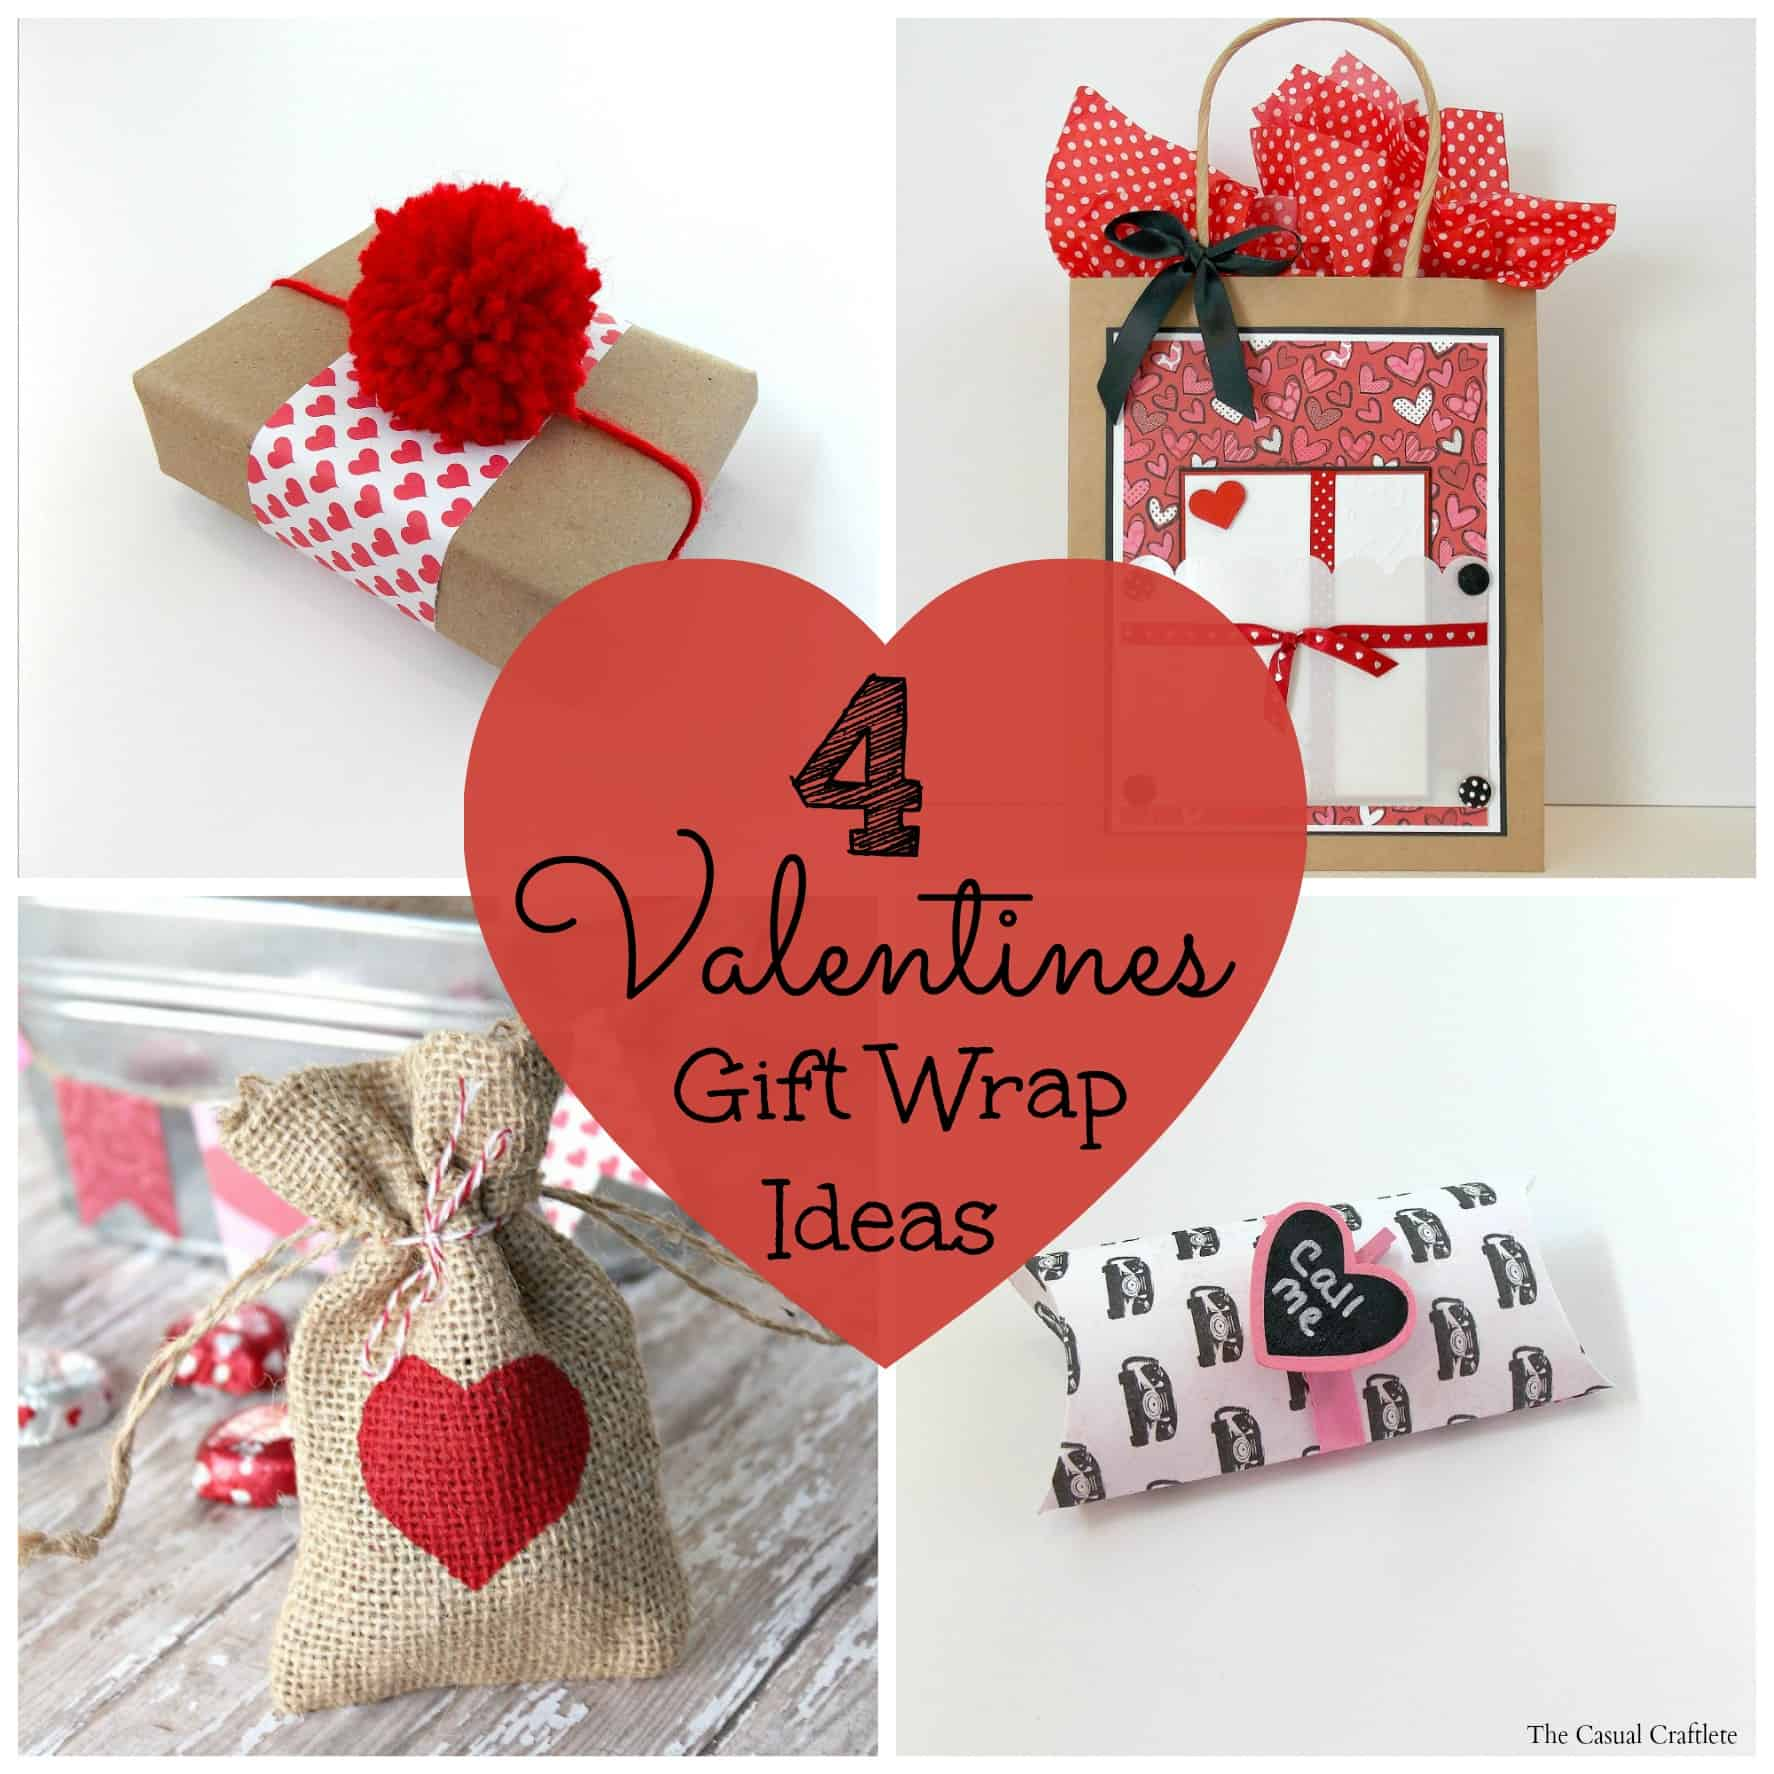 4 Valentines Gift Wrap Ideas - The Casual Craftlete - A Creative ...